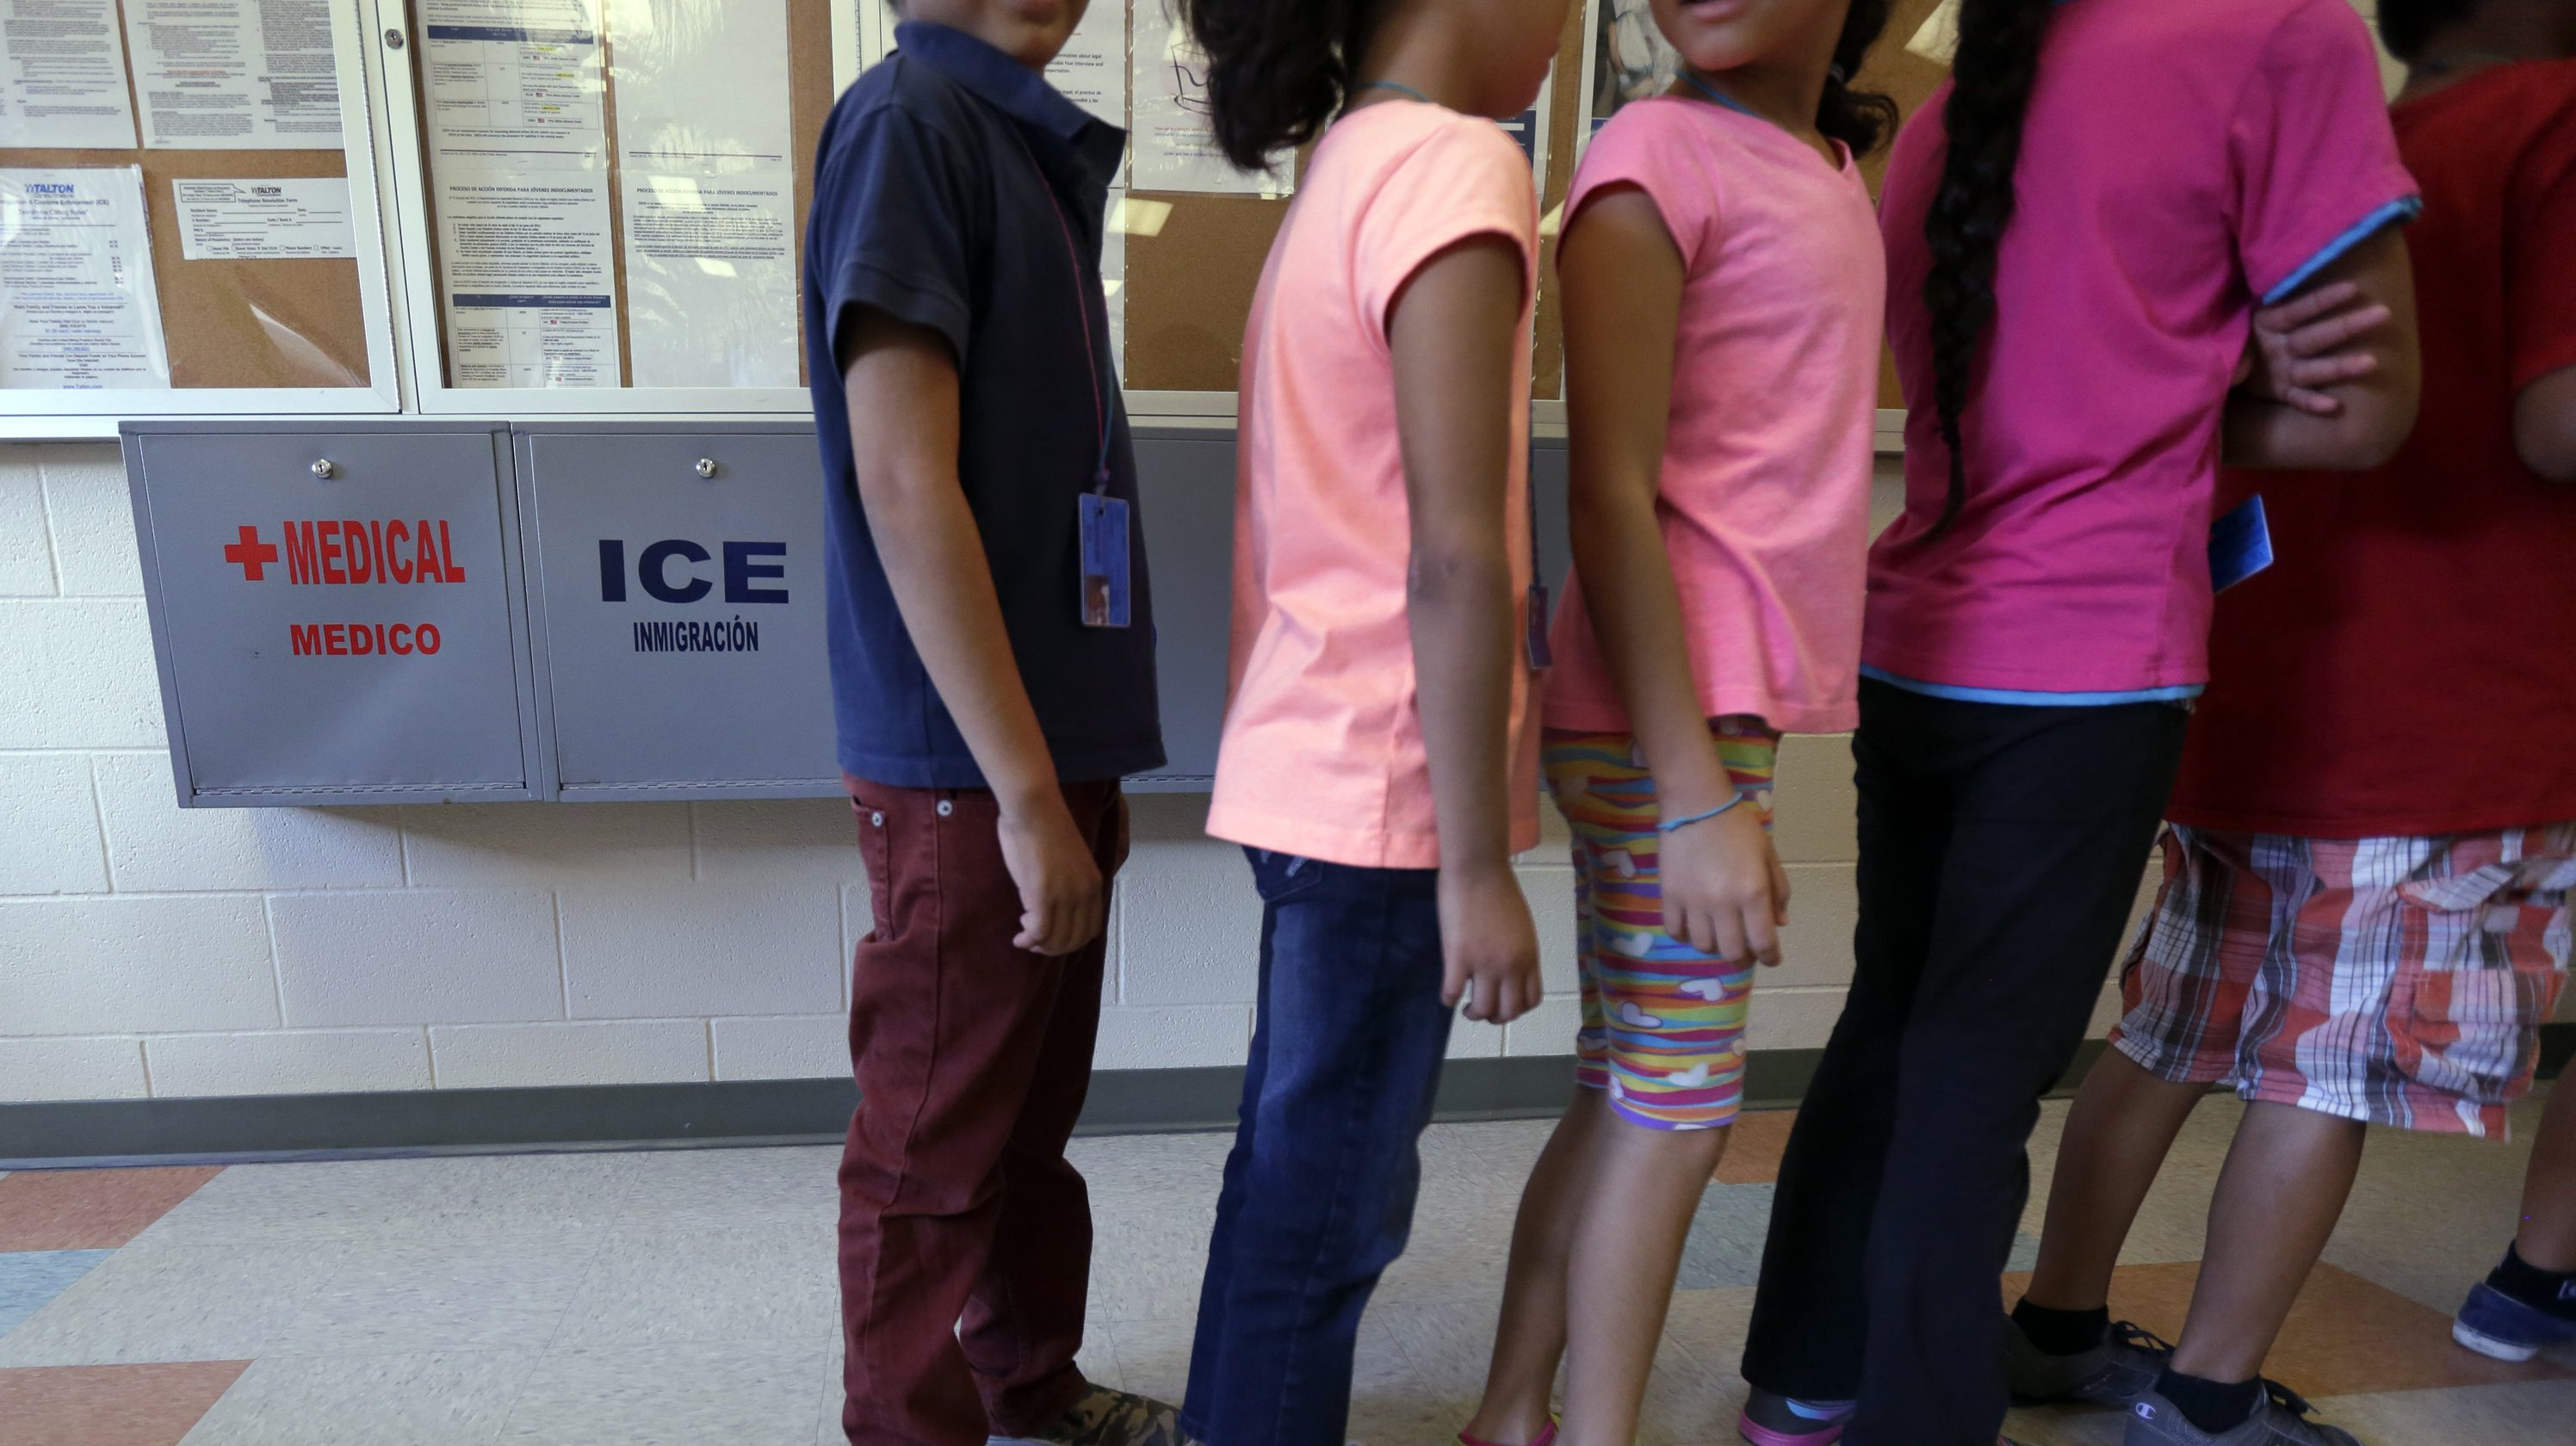 detained immigrant children line up at a detention center